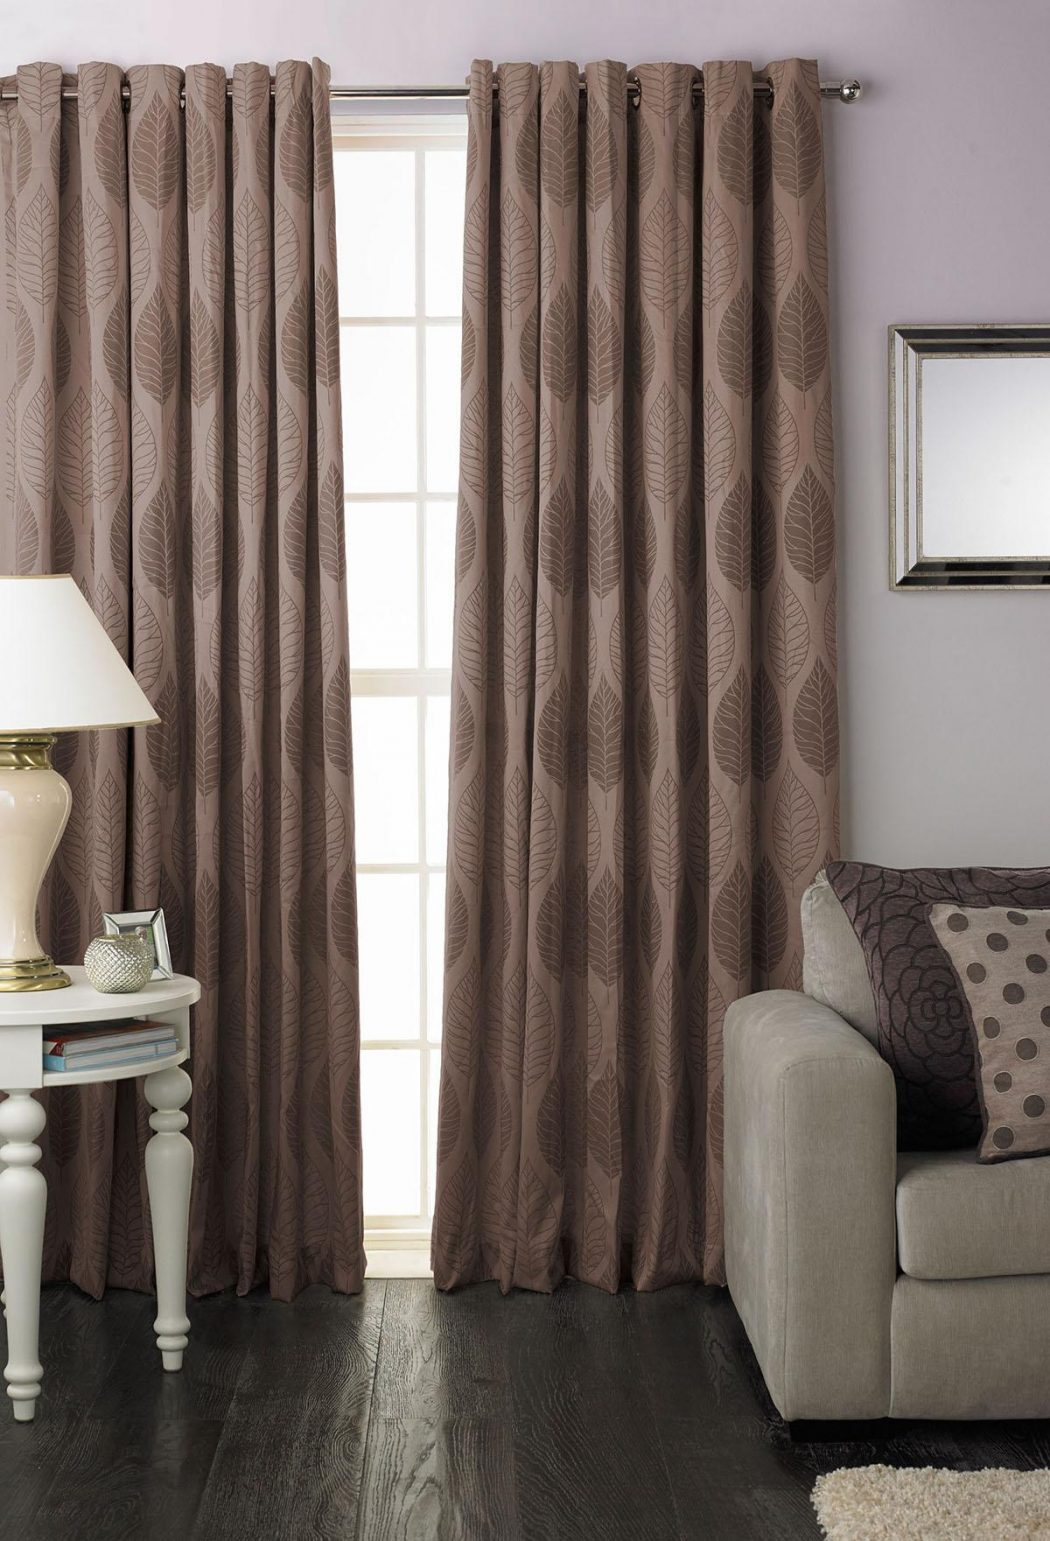 dalby-rt-curtain-mocha 20+ Hottest Curtain Designs for 2018